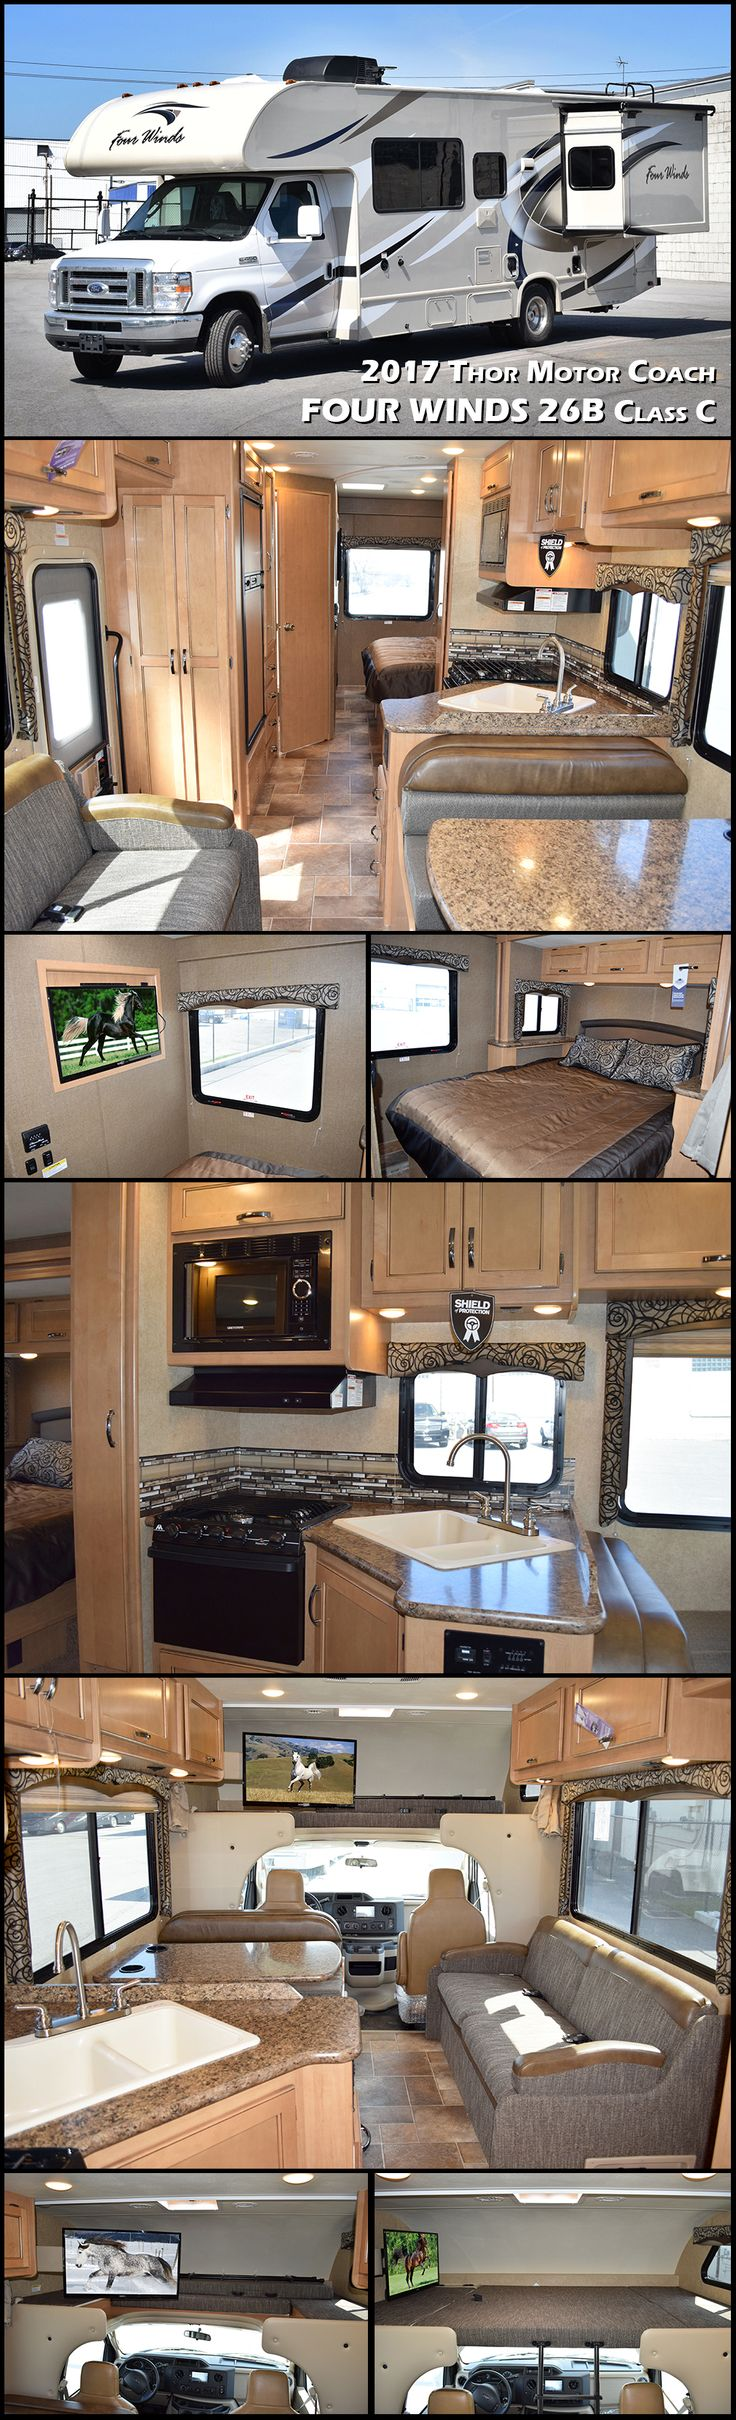 2017 Thor Motor Coach Four Winds 26B Class C Motorhome